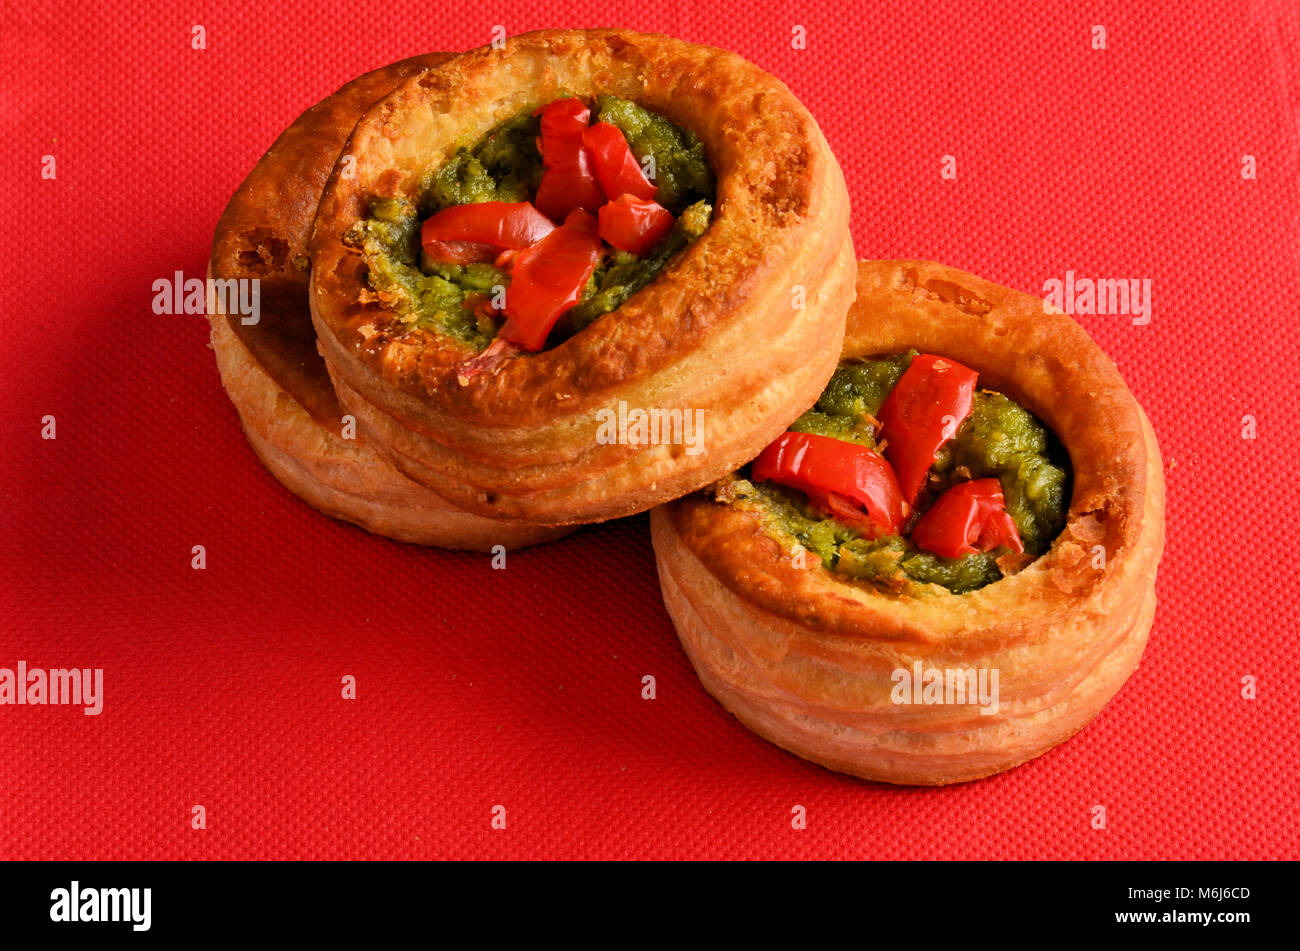 Vol-au-vent with mushroom and chicken, on a red paper - Stock Image